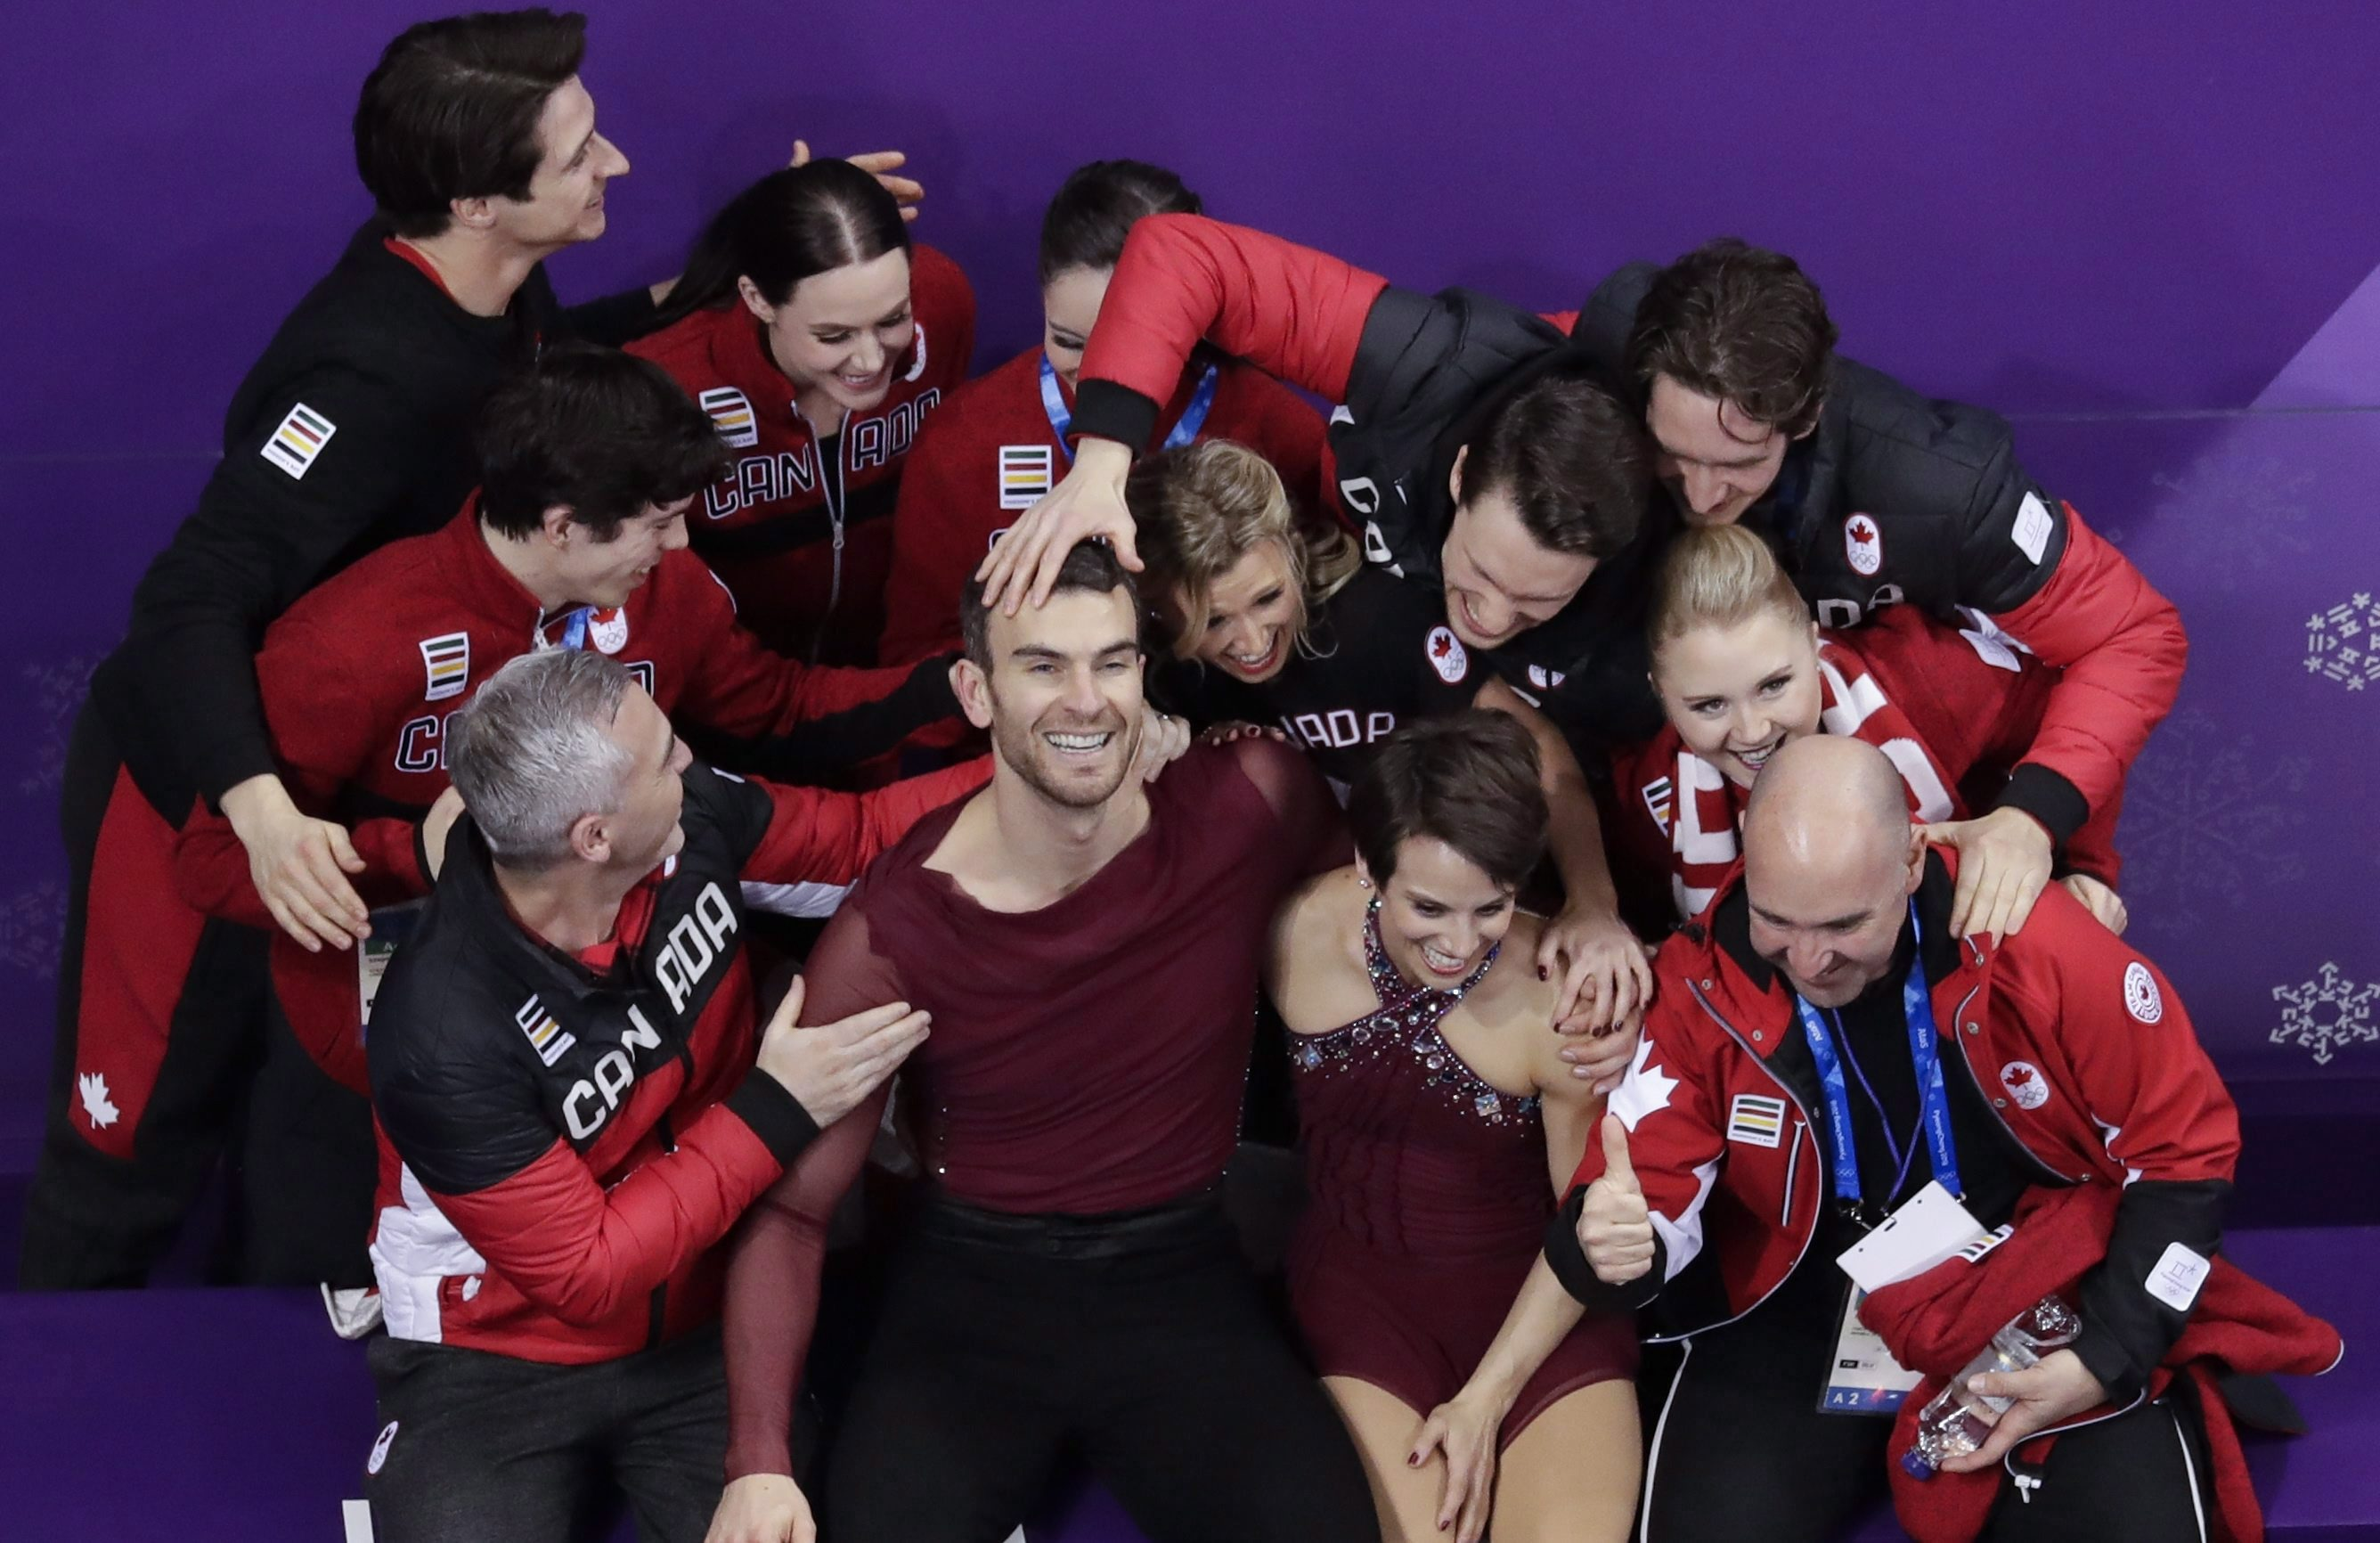 Canadian figure skating team reacts after performing